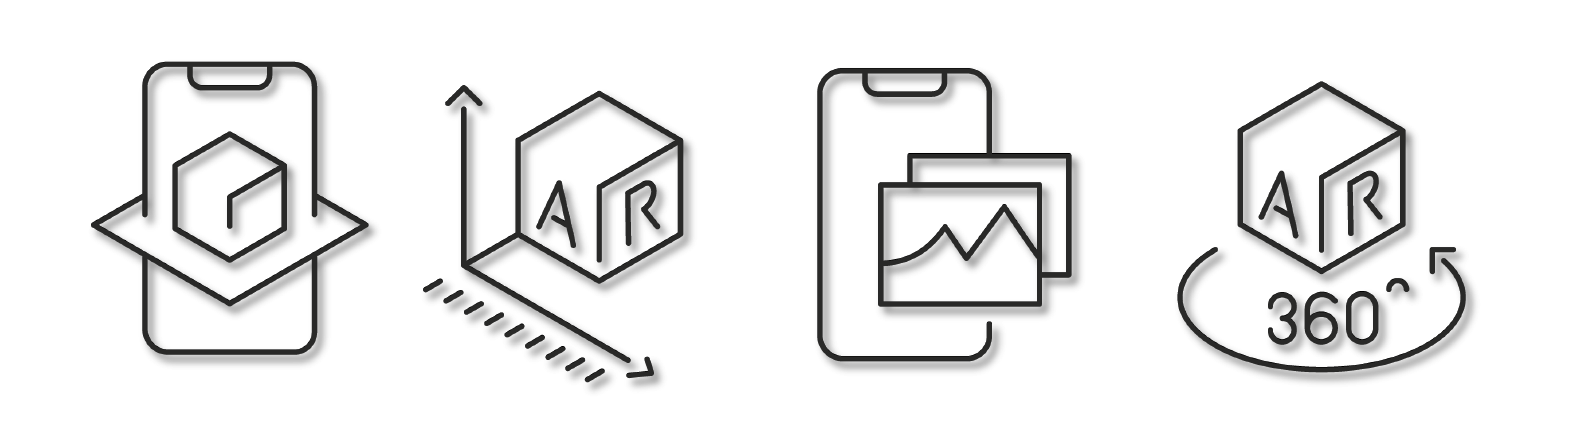 Branded Iconography